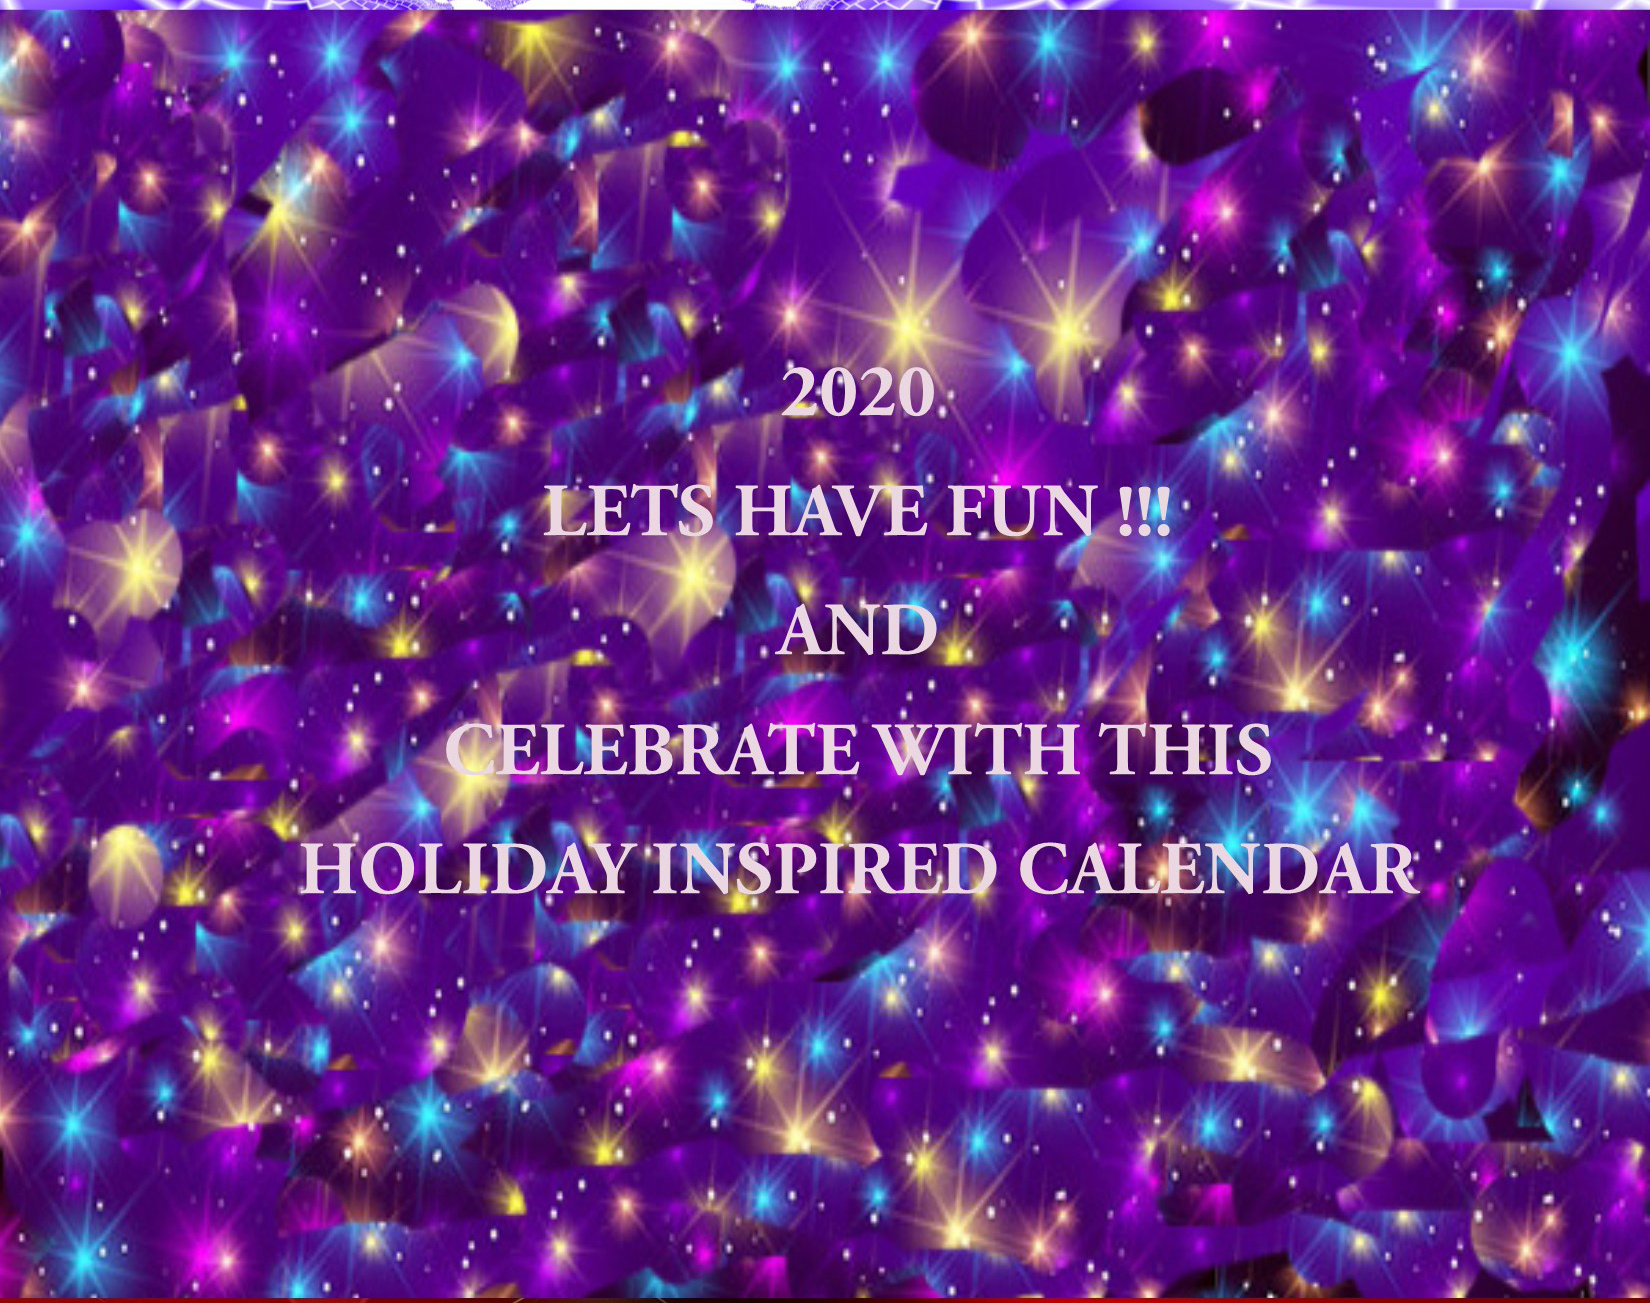 2020 Have Fun Holiday Calendar